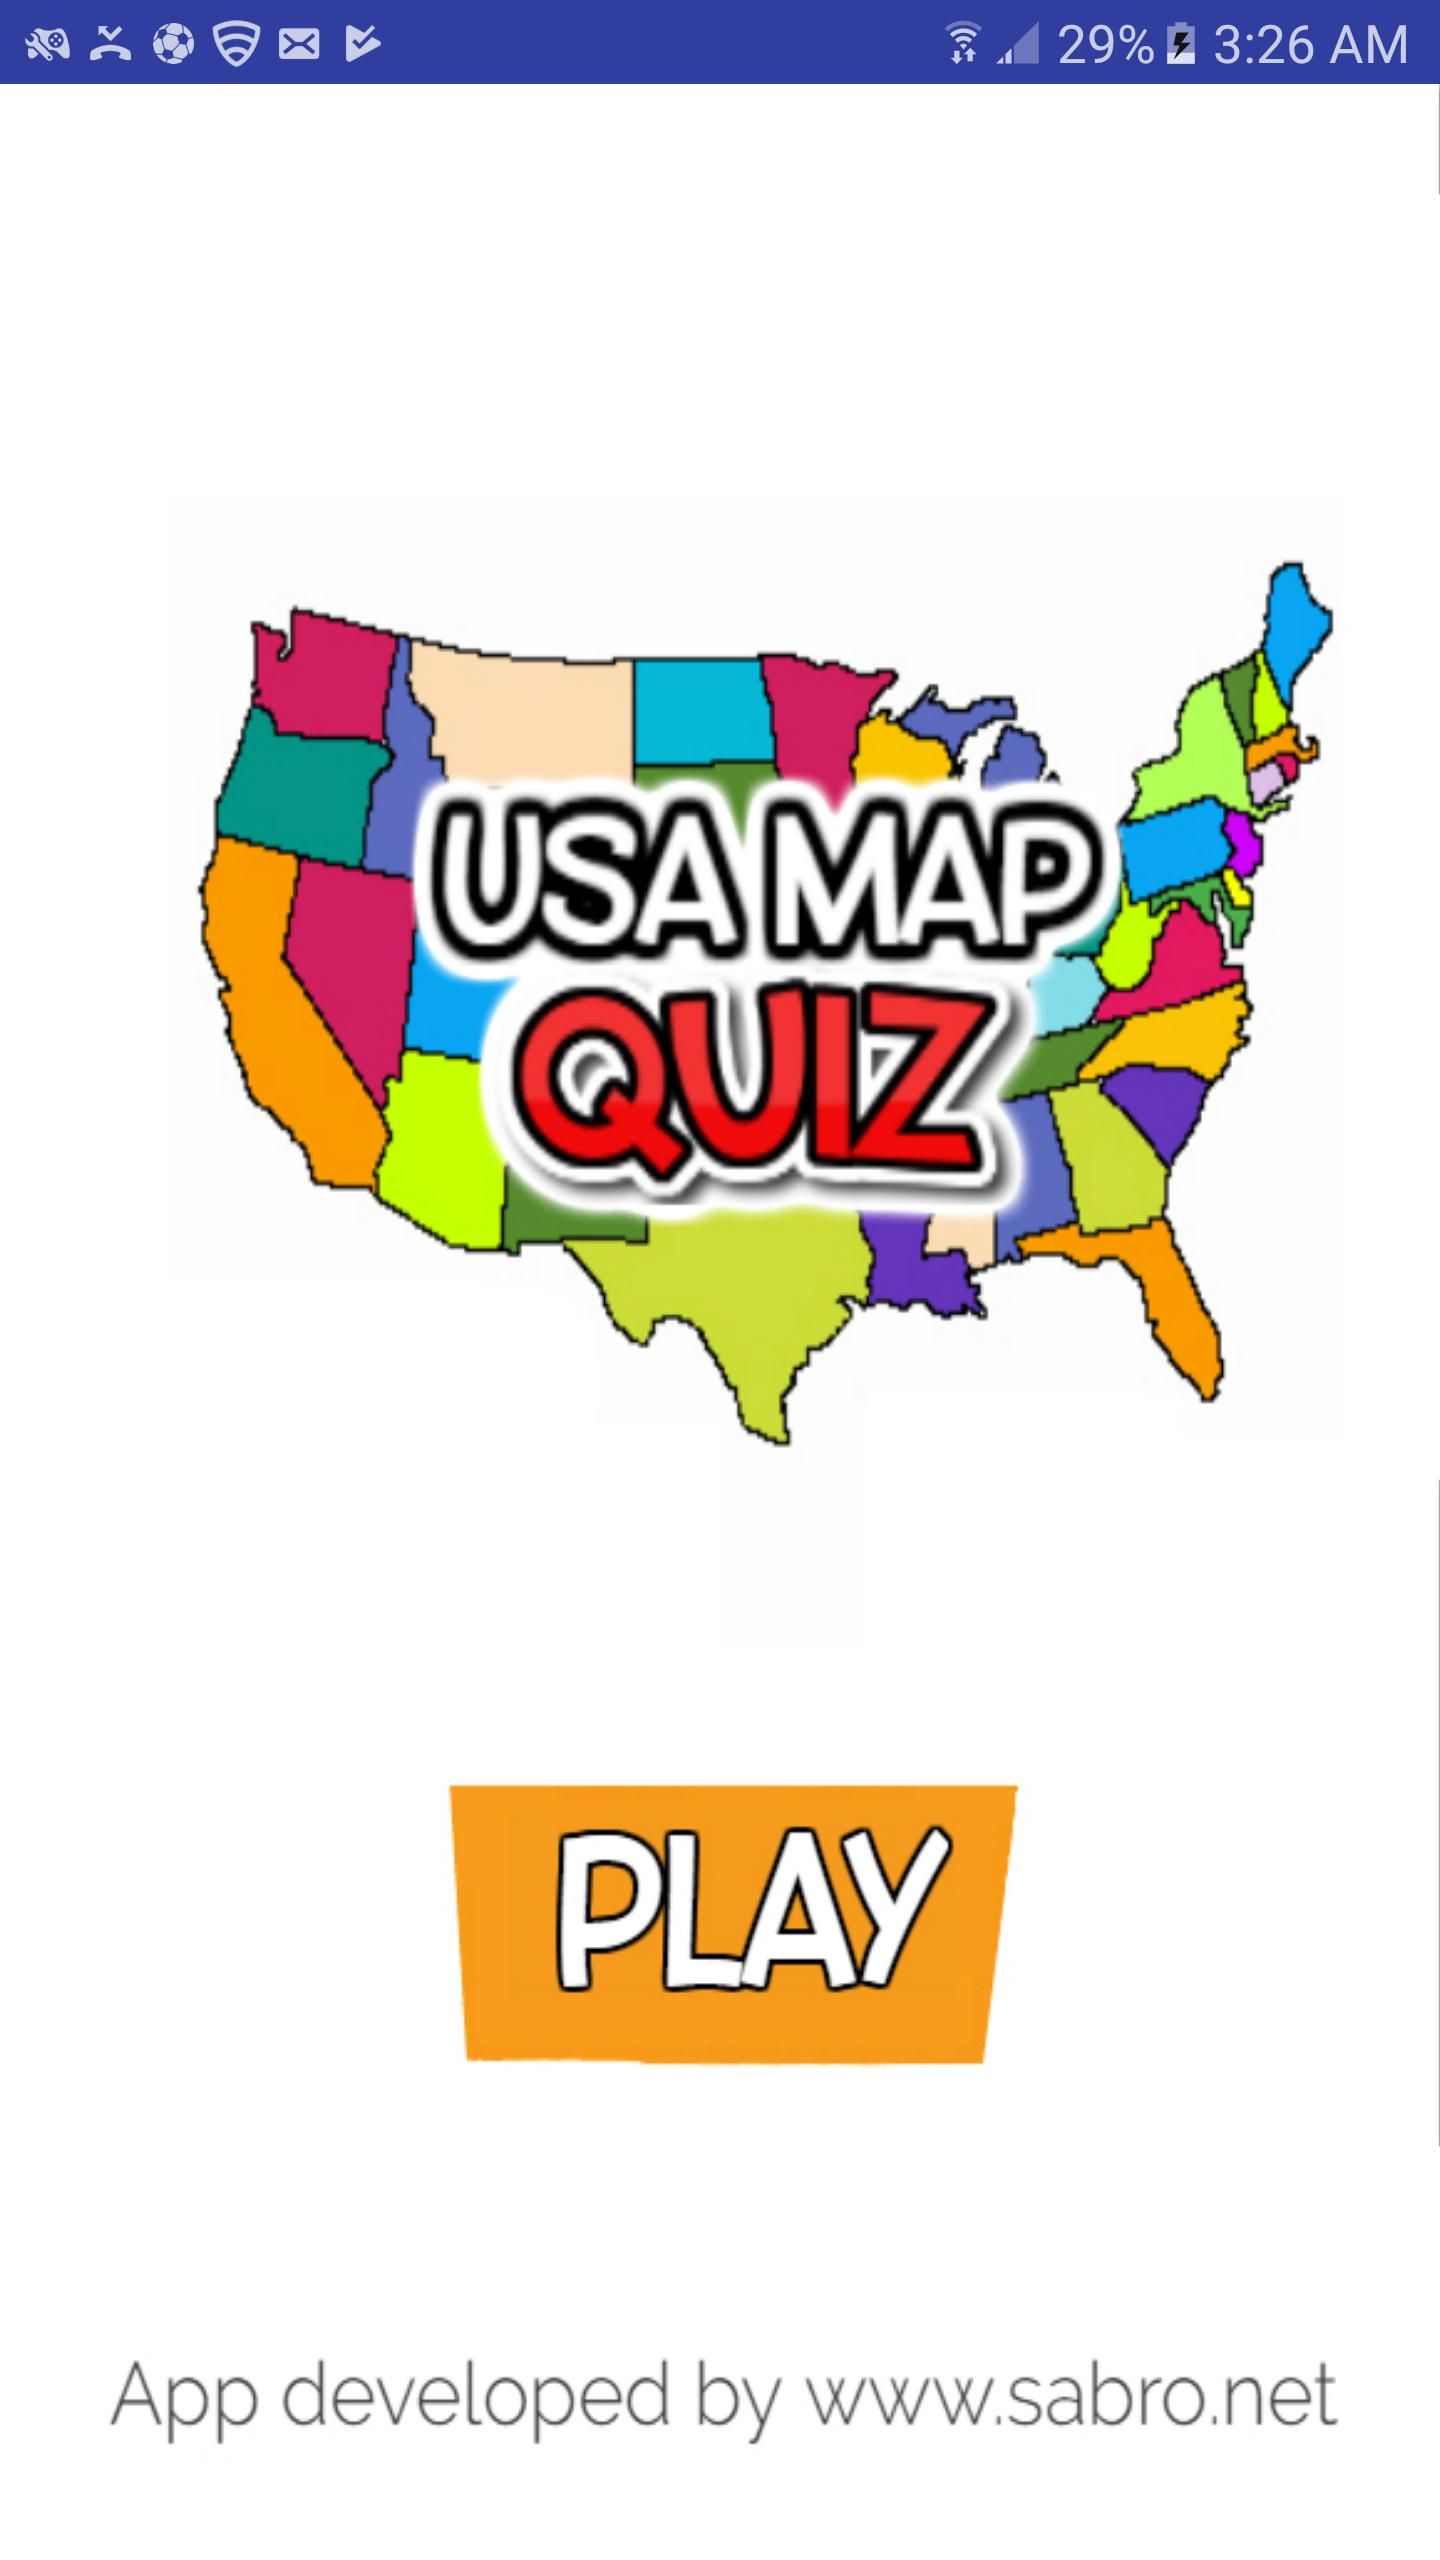 USA MAP QUIZ Guess The US State Game for Android - APK Download